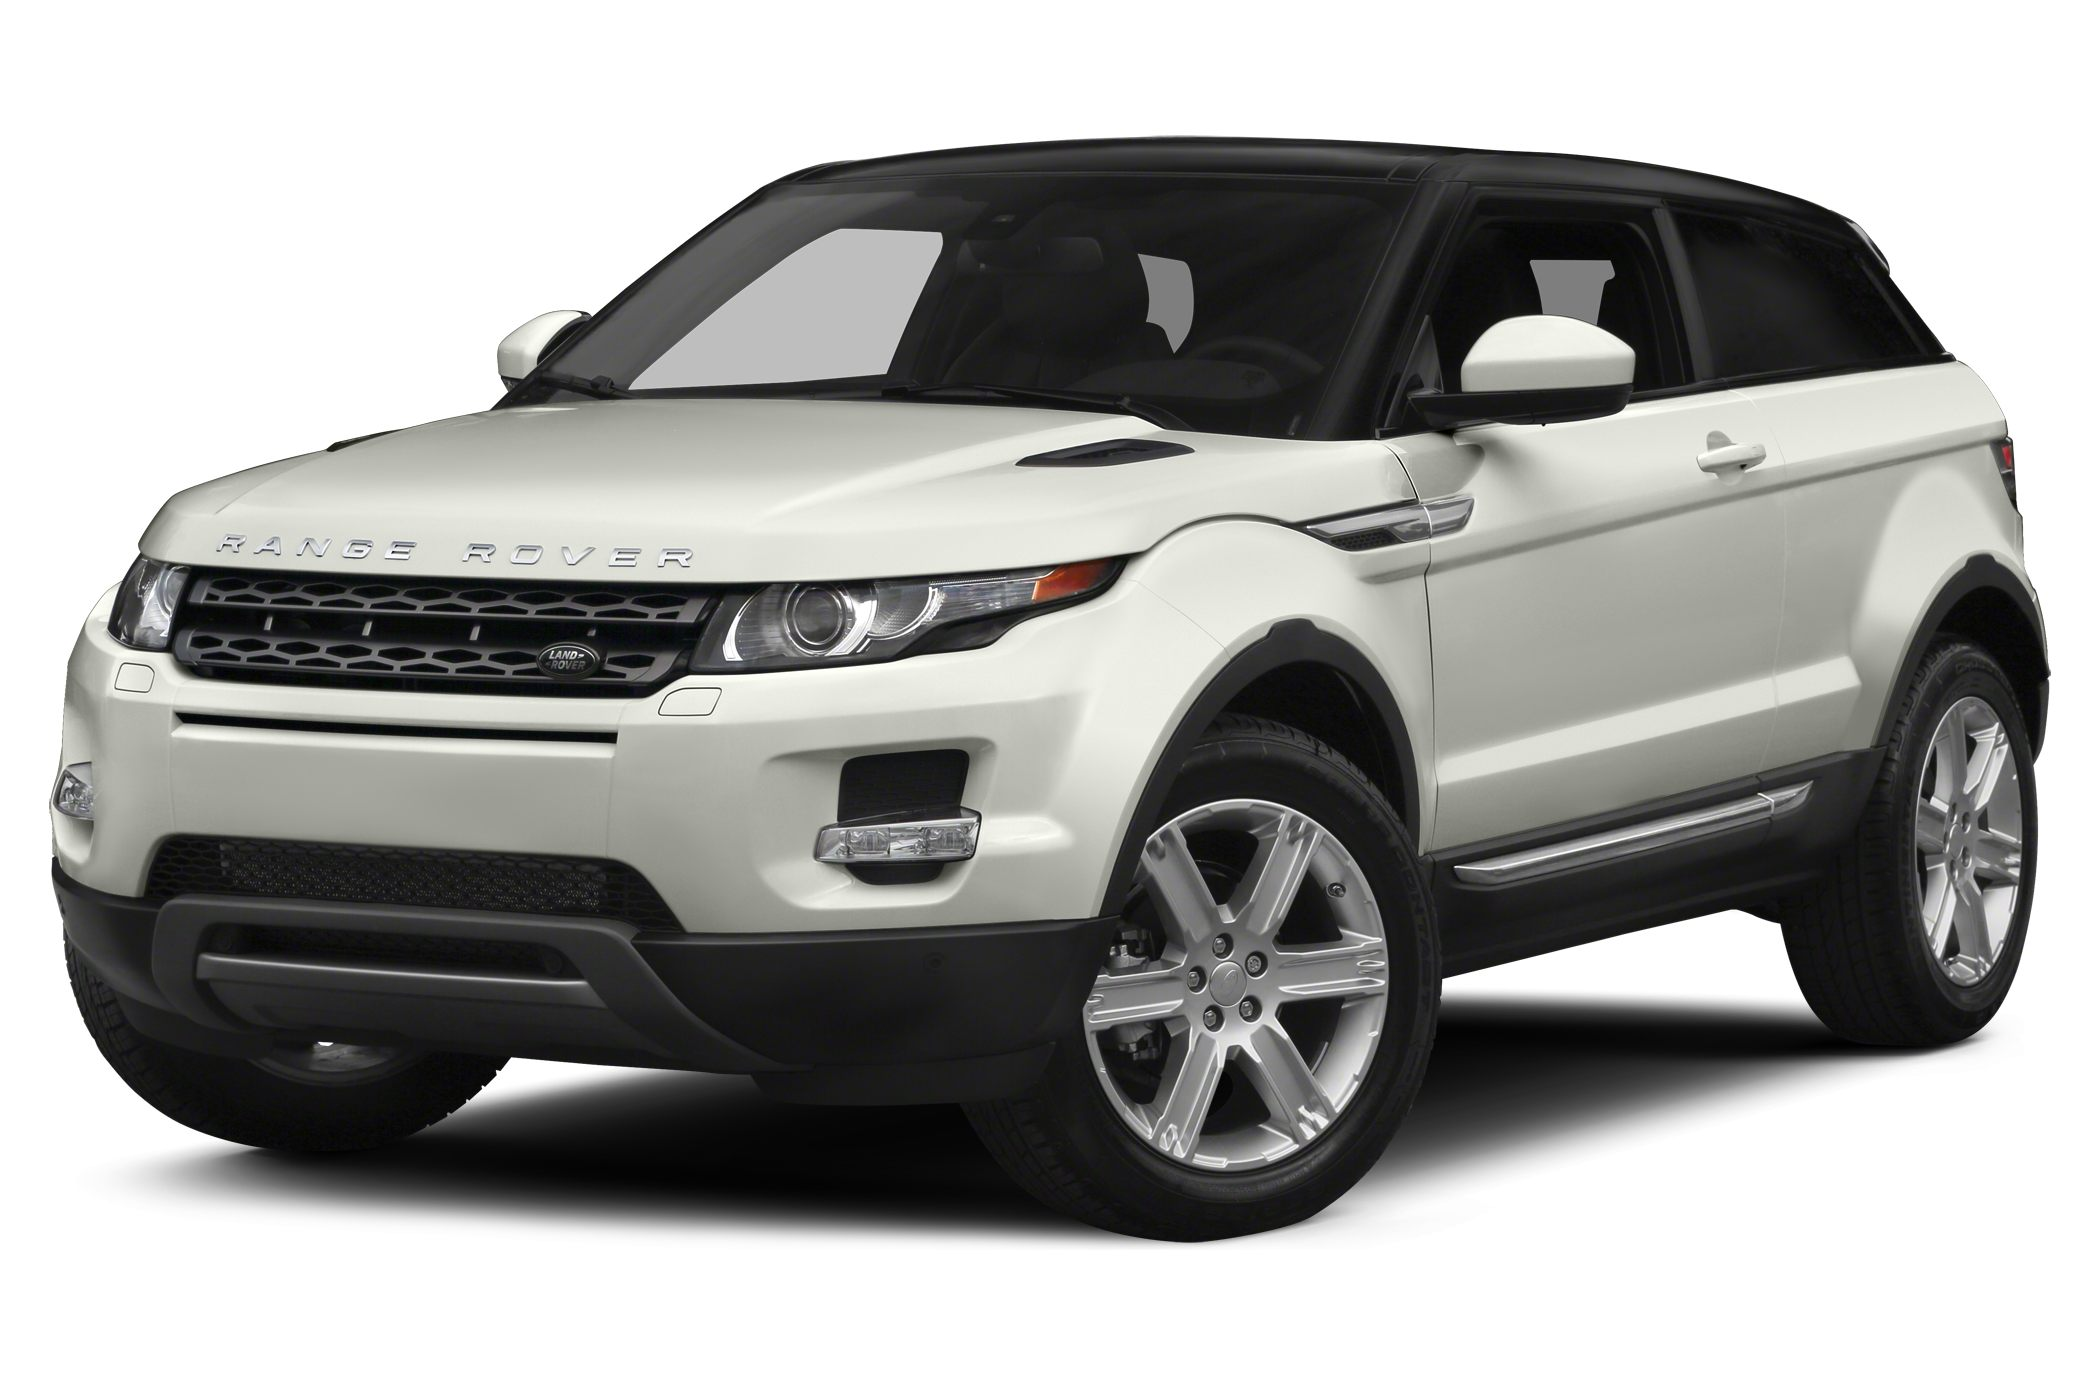 2015 Land Rover Range Rover Evoque DYNAMIC SUV for sale in Edison for $62,444 with 44 miles.